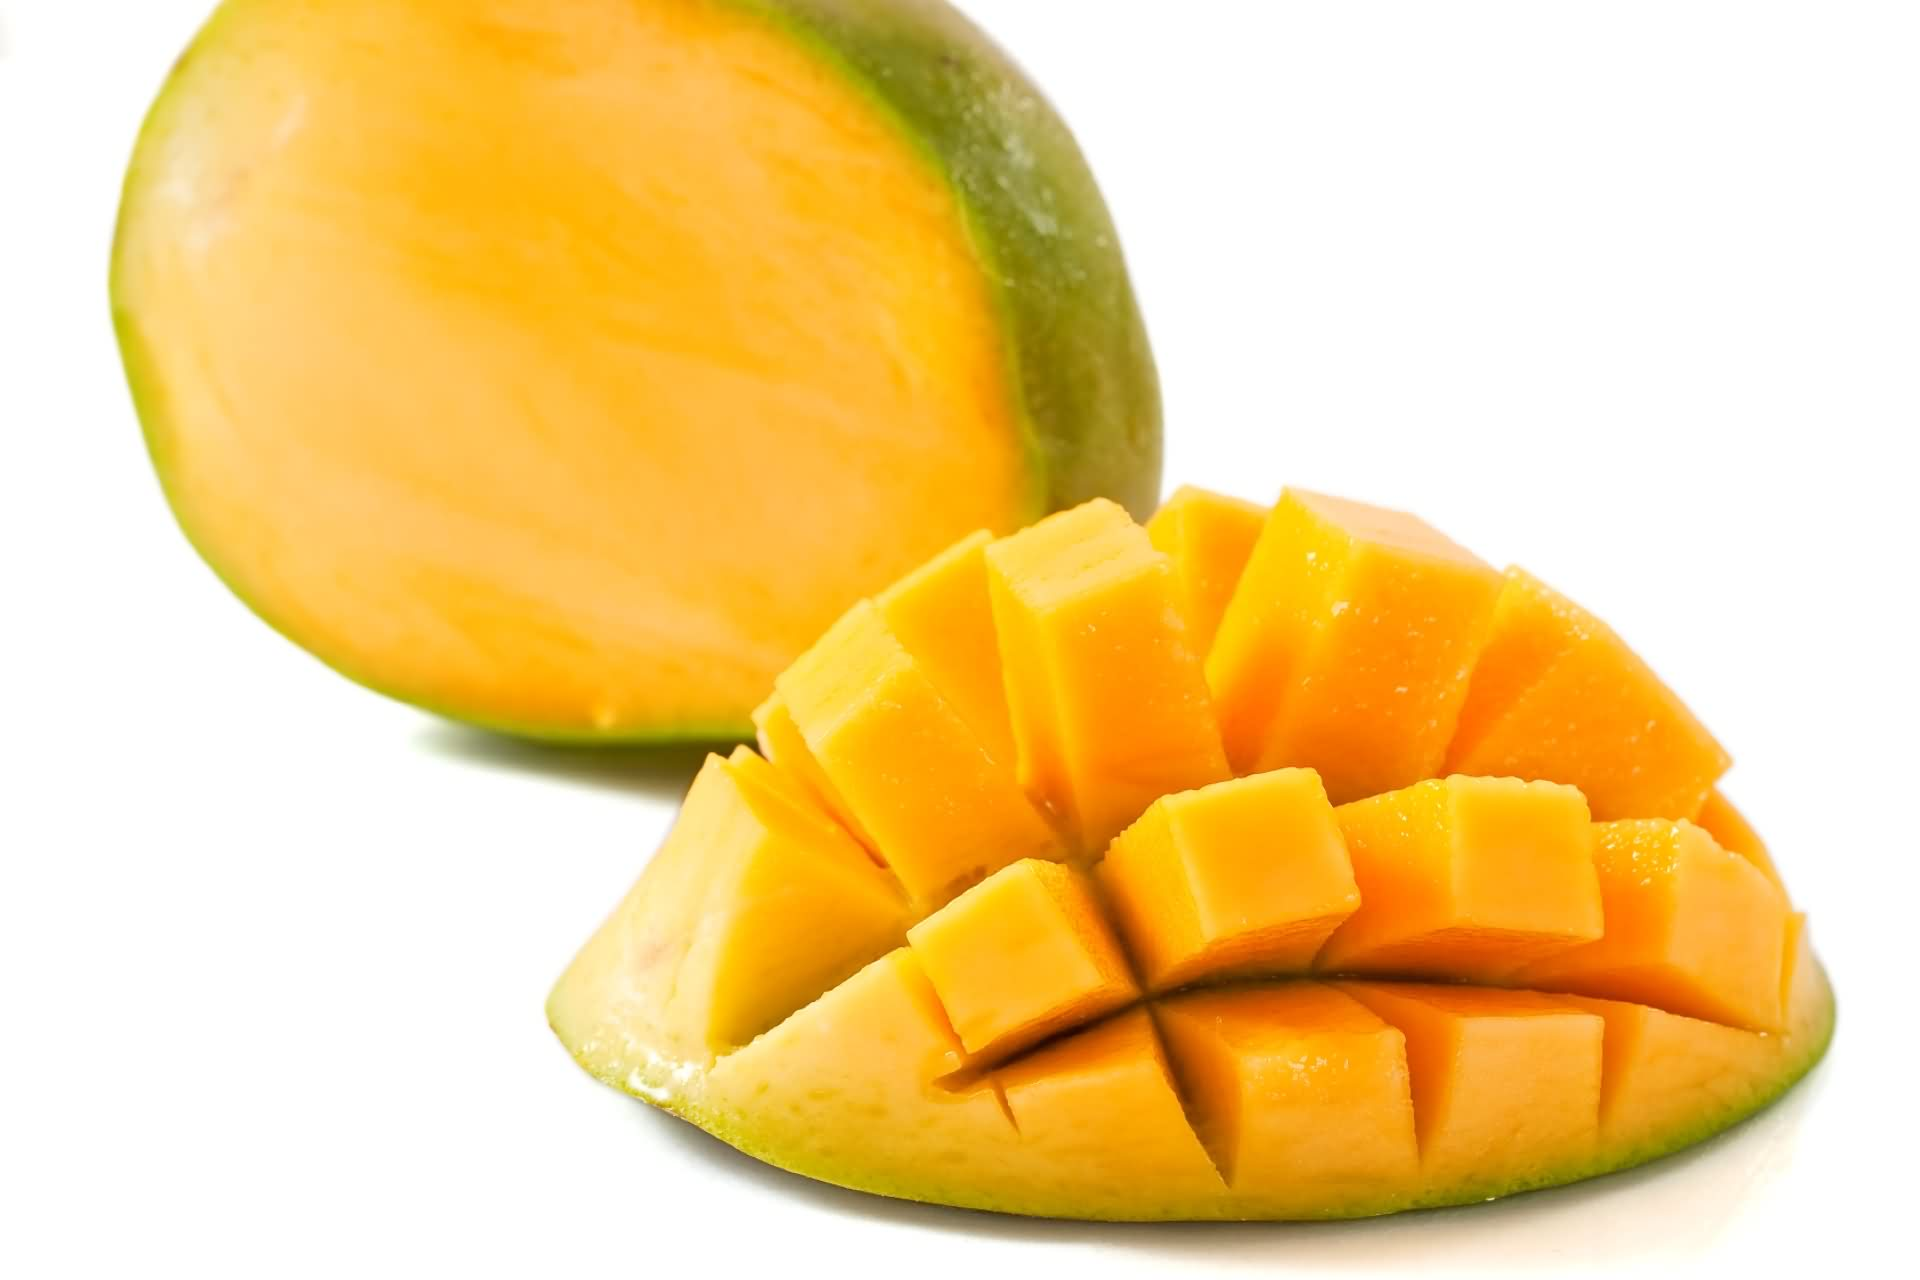 Mango @ Healthy Food For Pregnancy